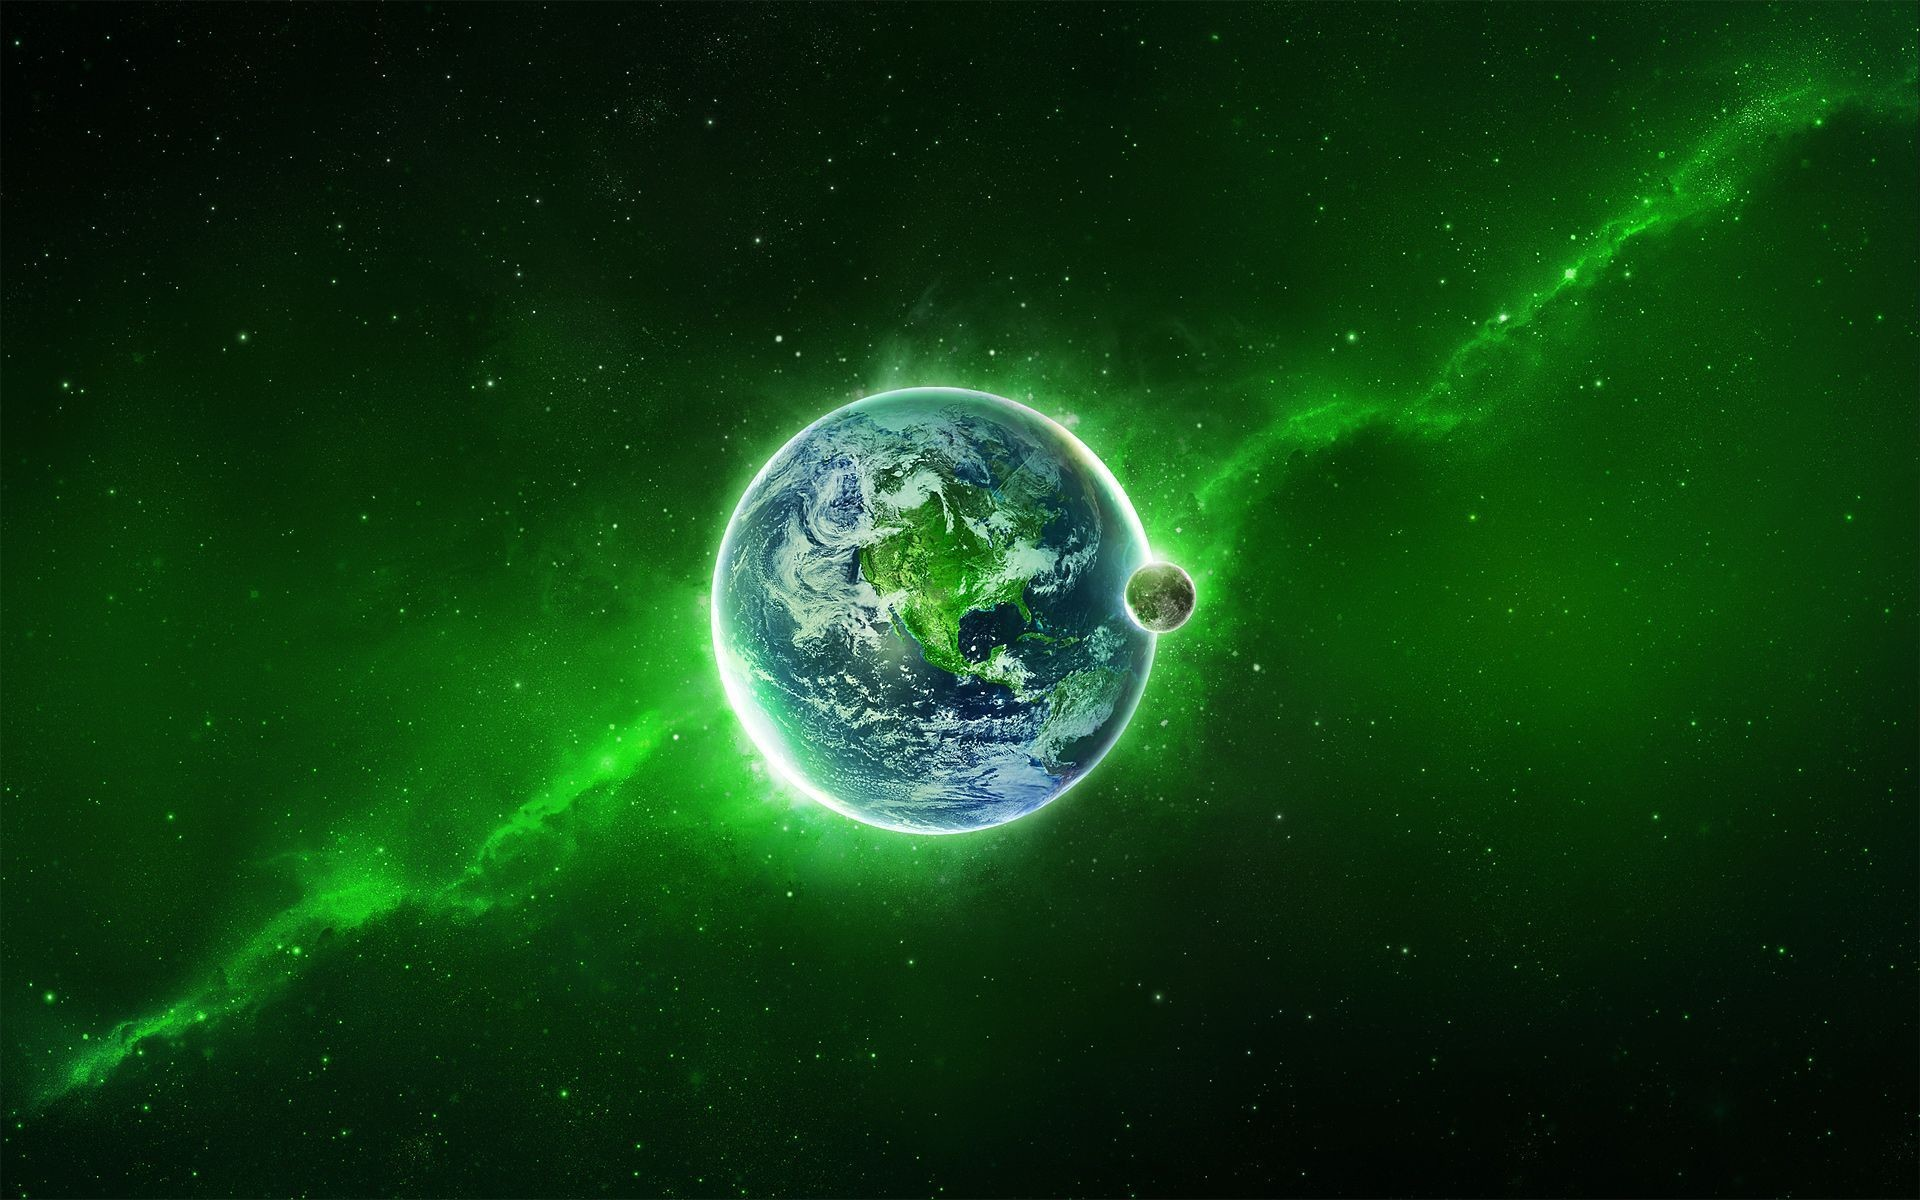 Full HD Wallpapers + Green, Space, Planets, Stars, Earth